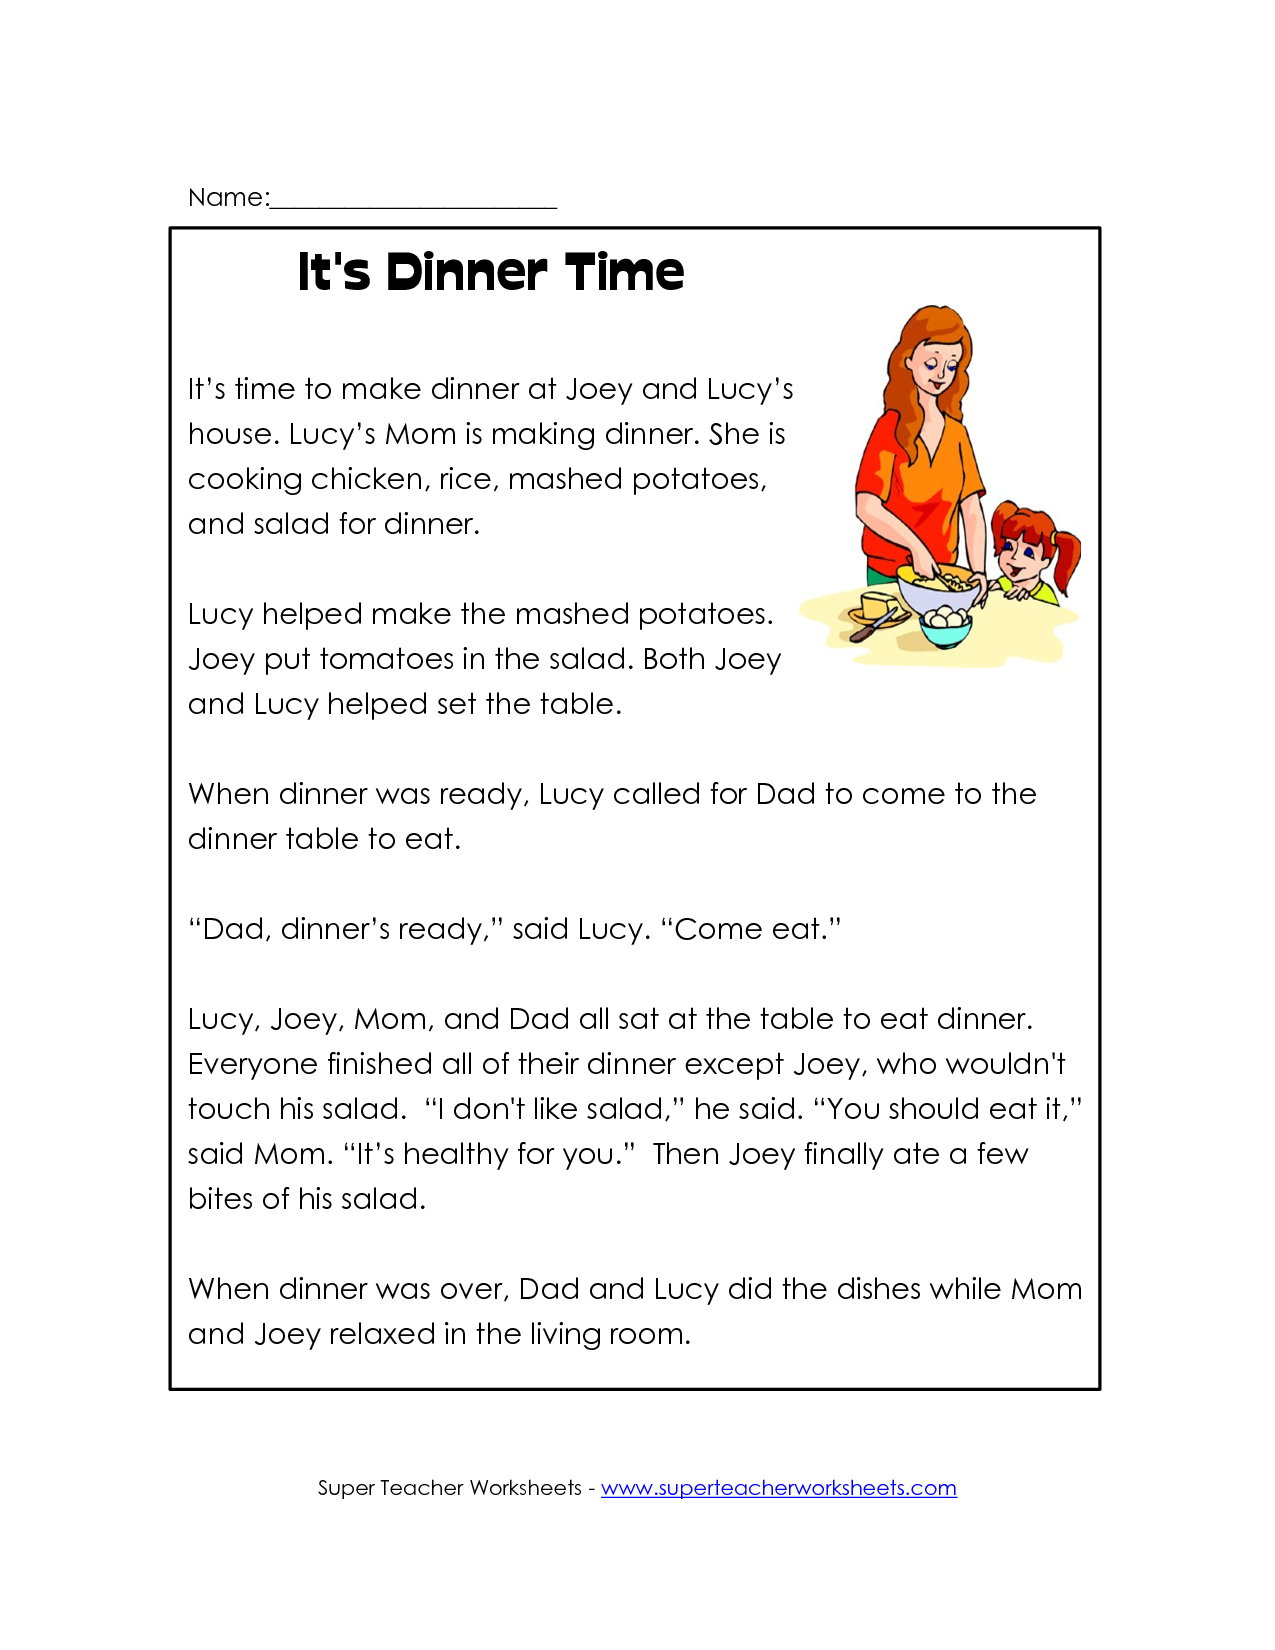 Worksheet Story Reading For Grade 2 1000 images about ideas for the house on pinterest reading comprehension worksheets and kindergarten english worksheets